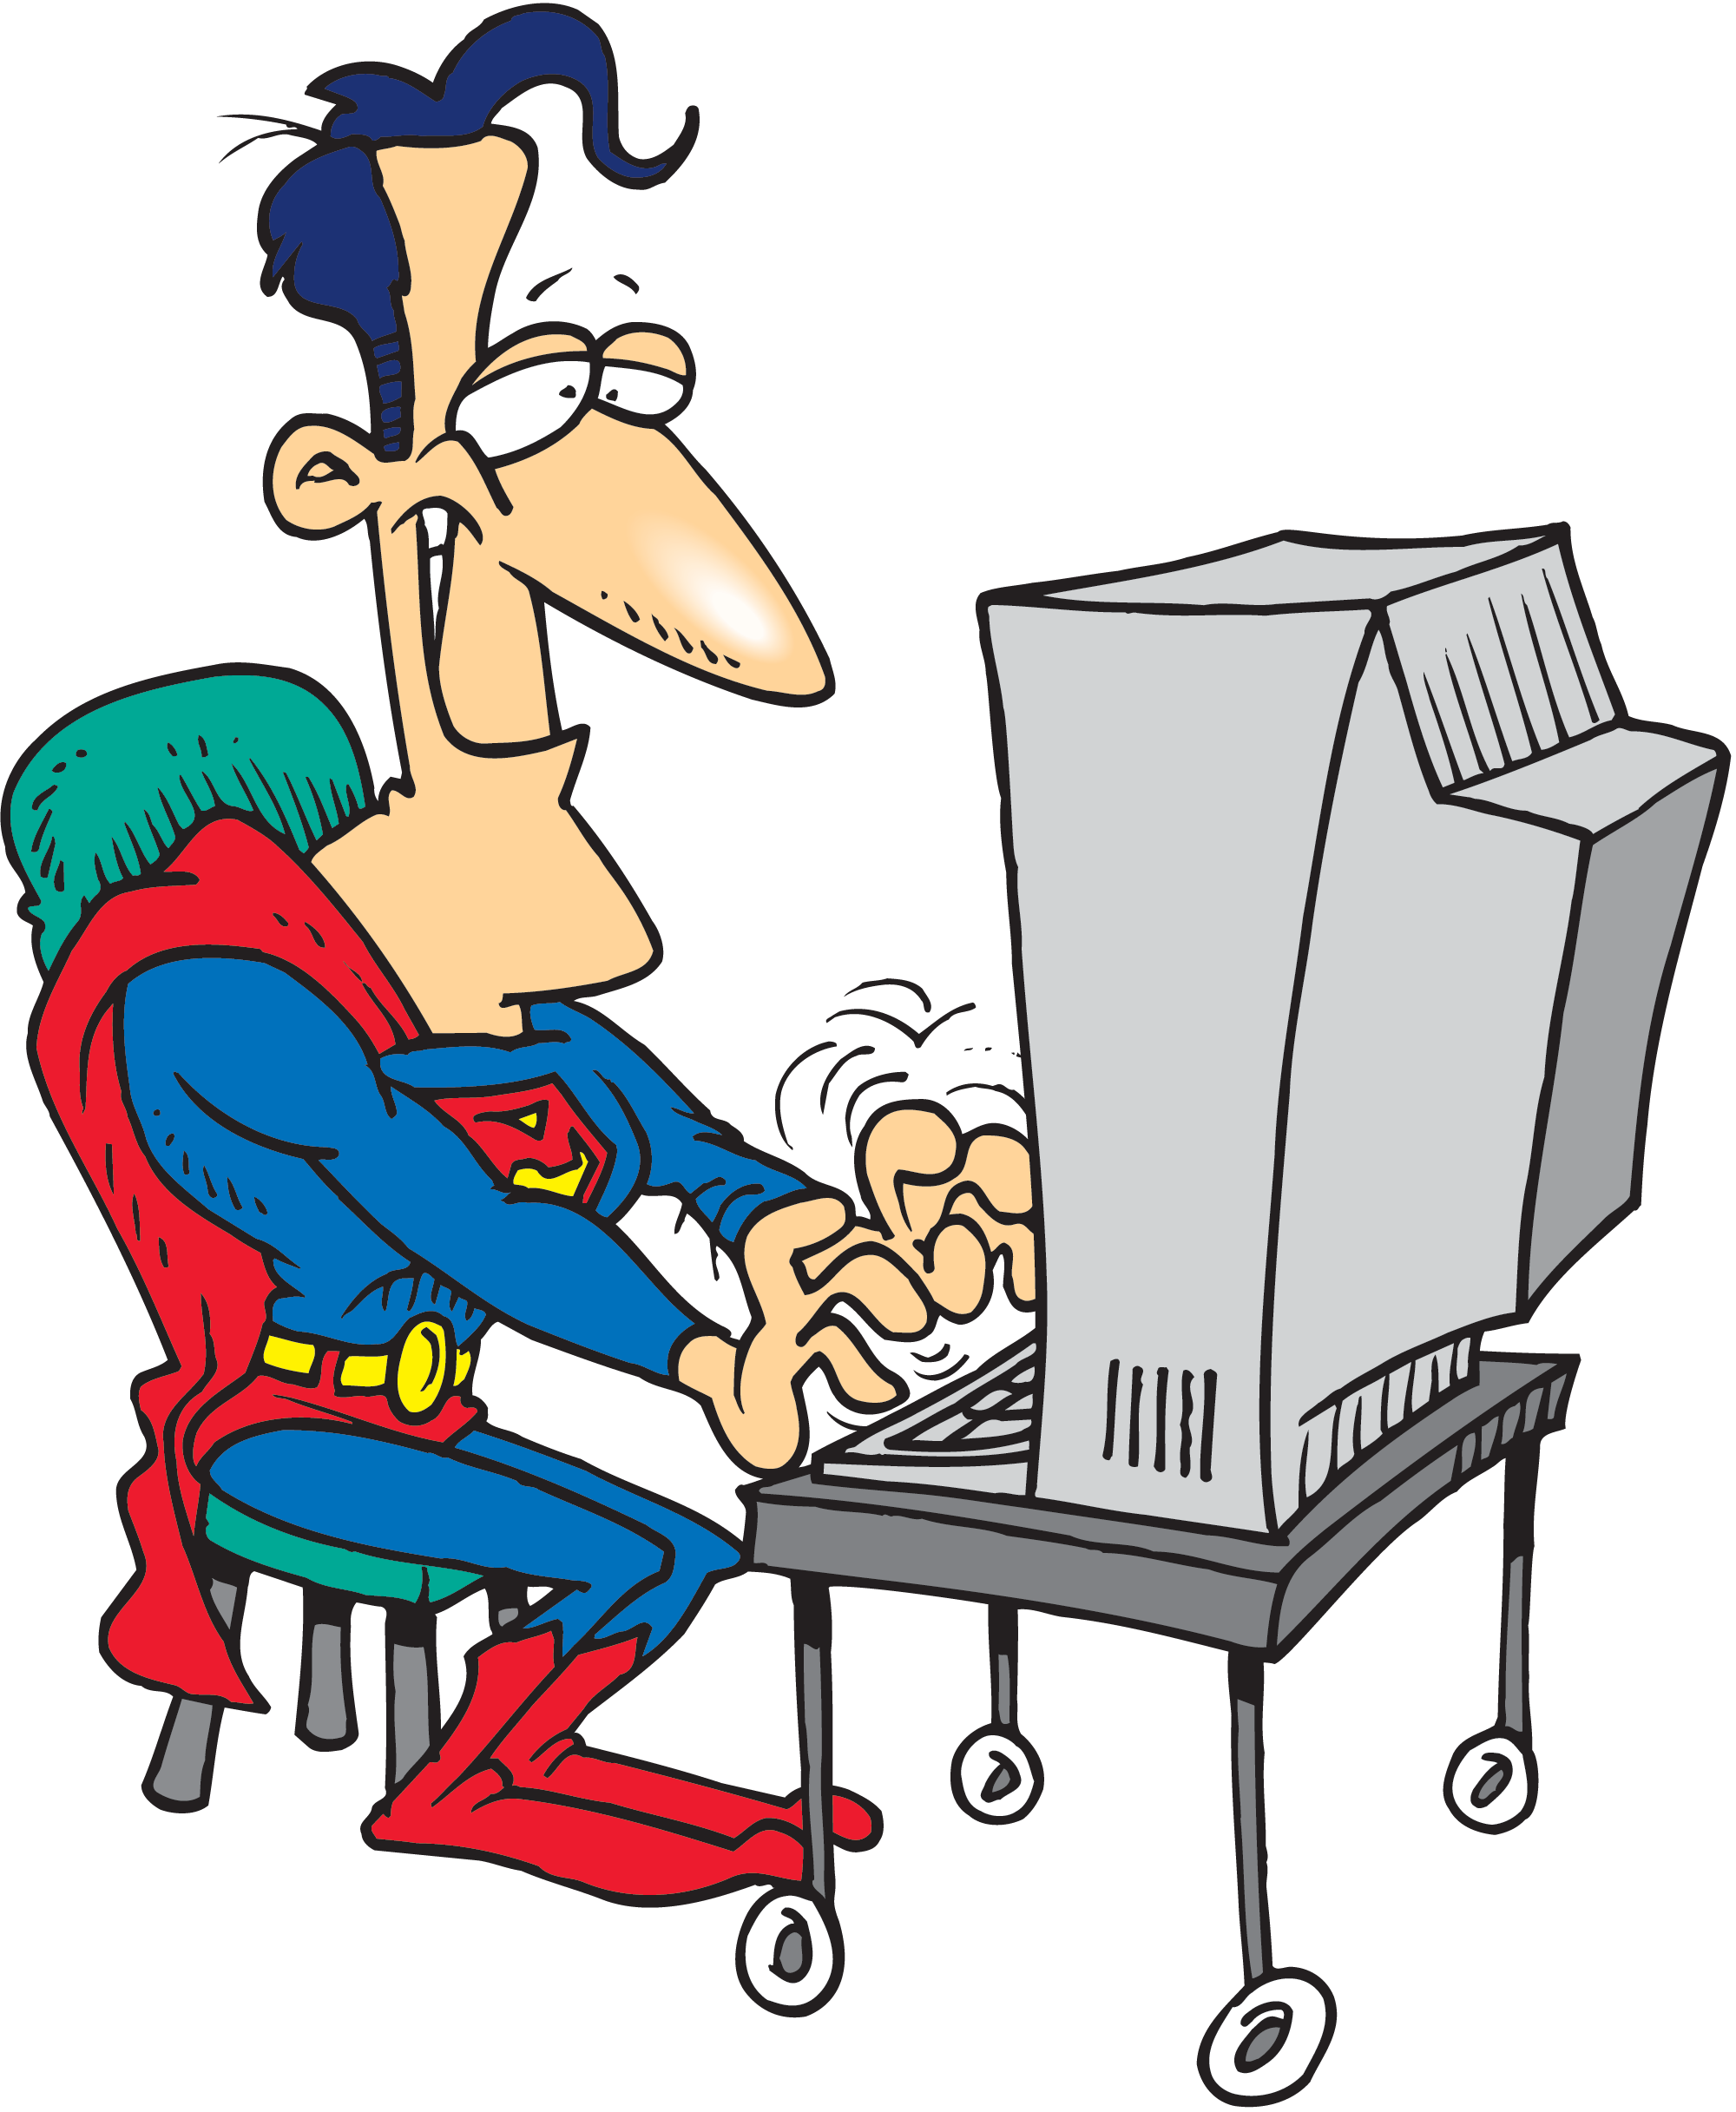 Schedule clipart hectic. Superman did take his